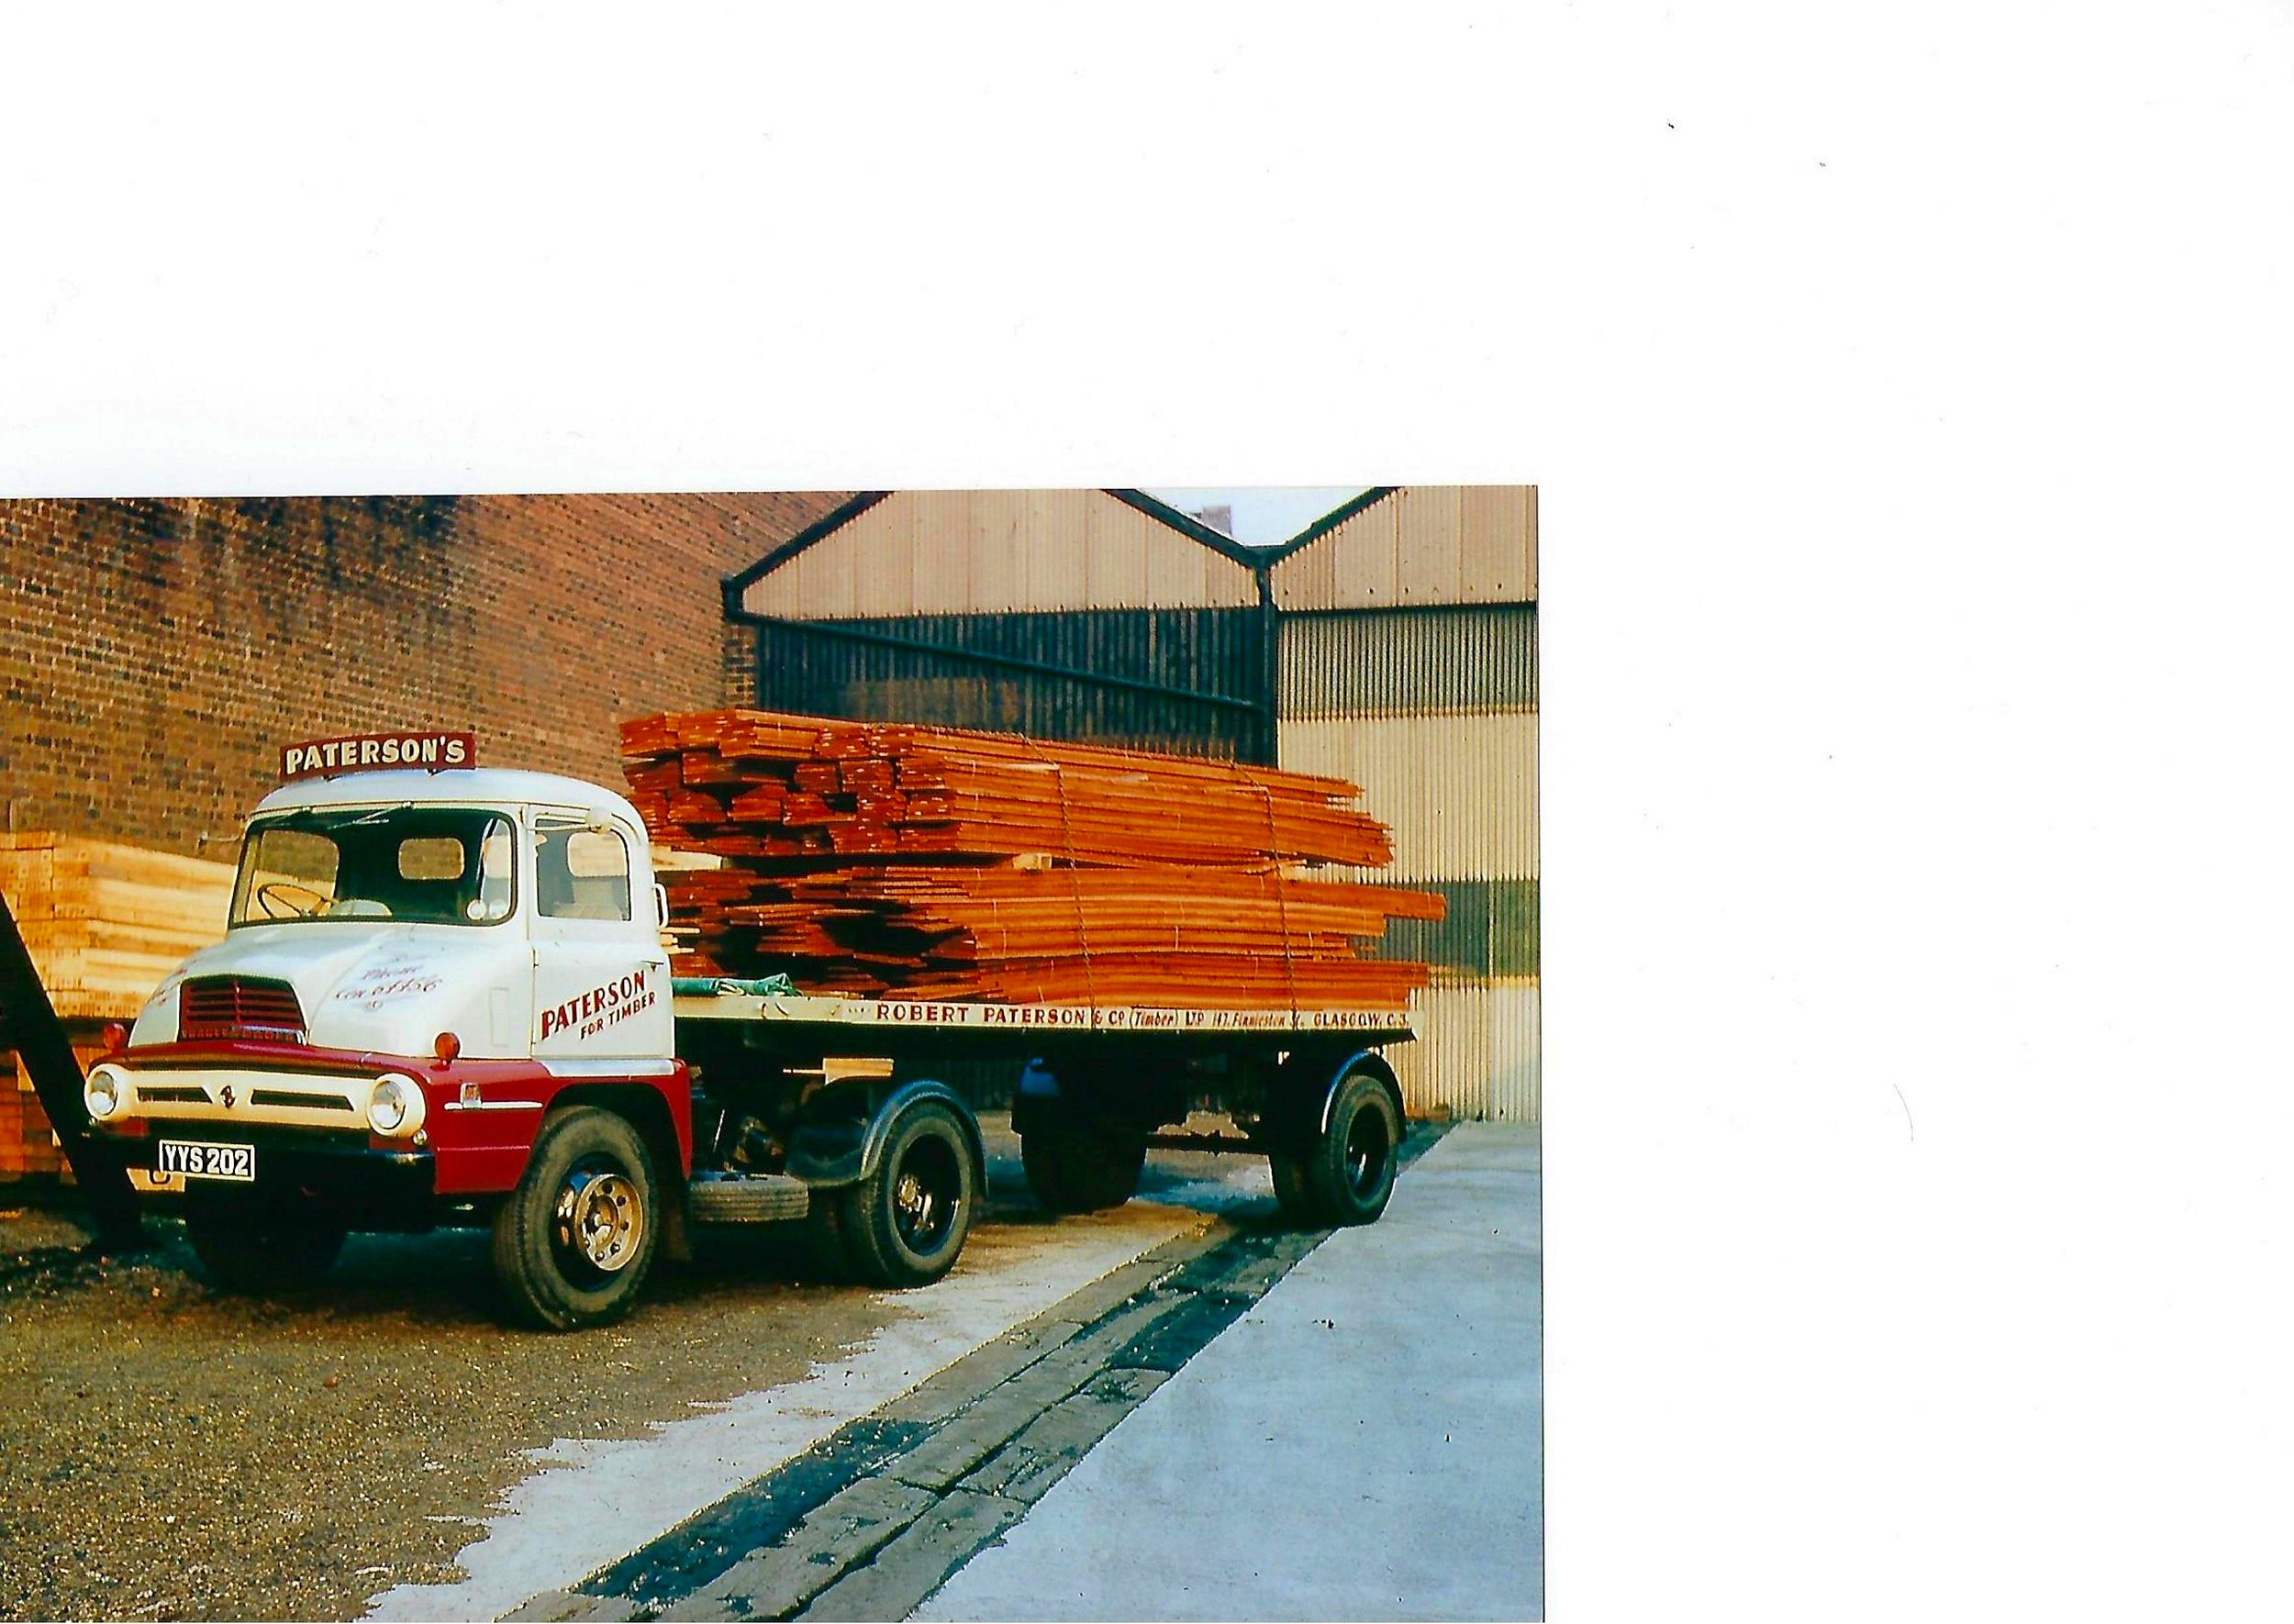 Paterson Timber truck from 1950s